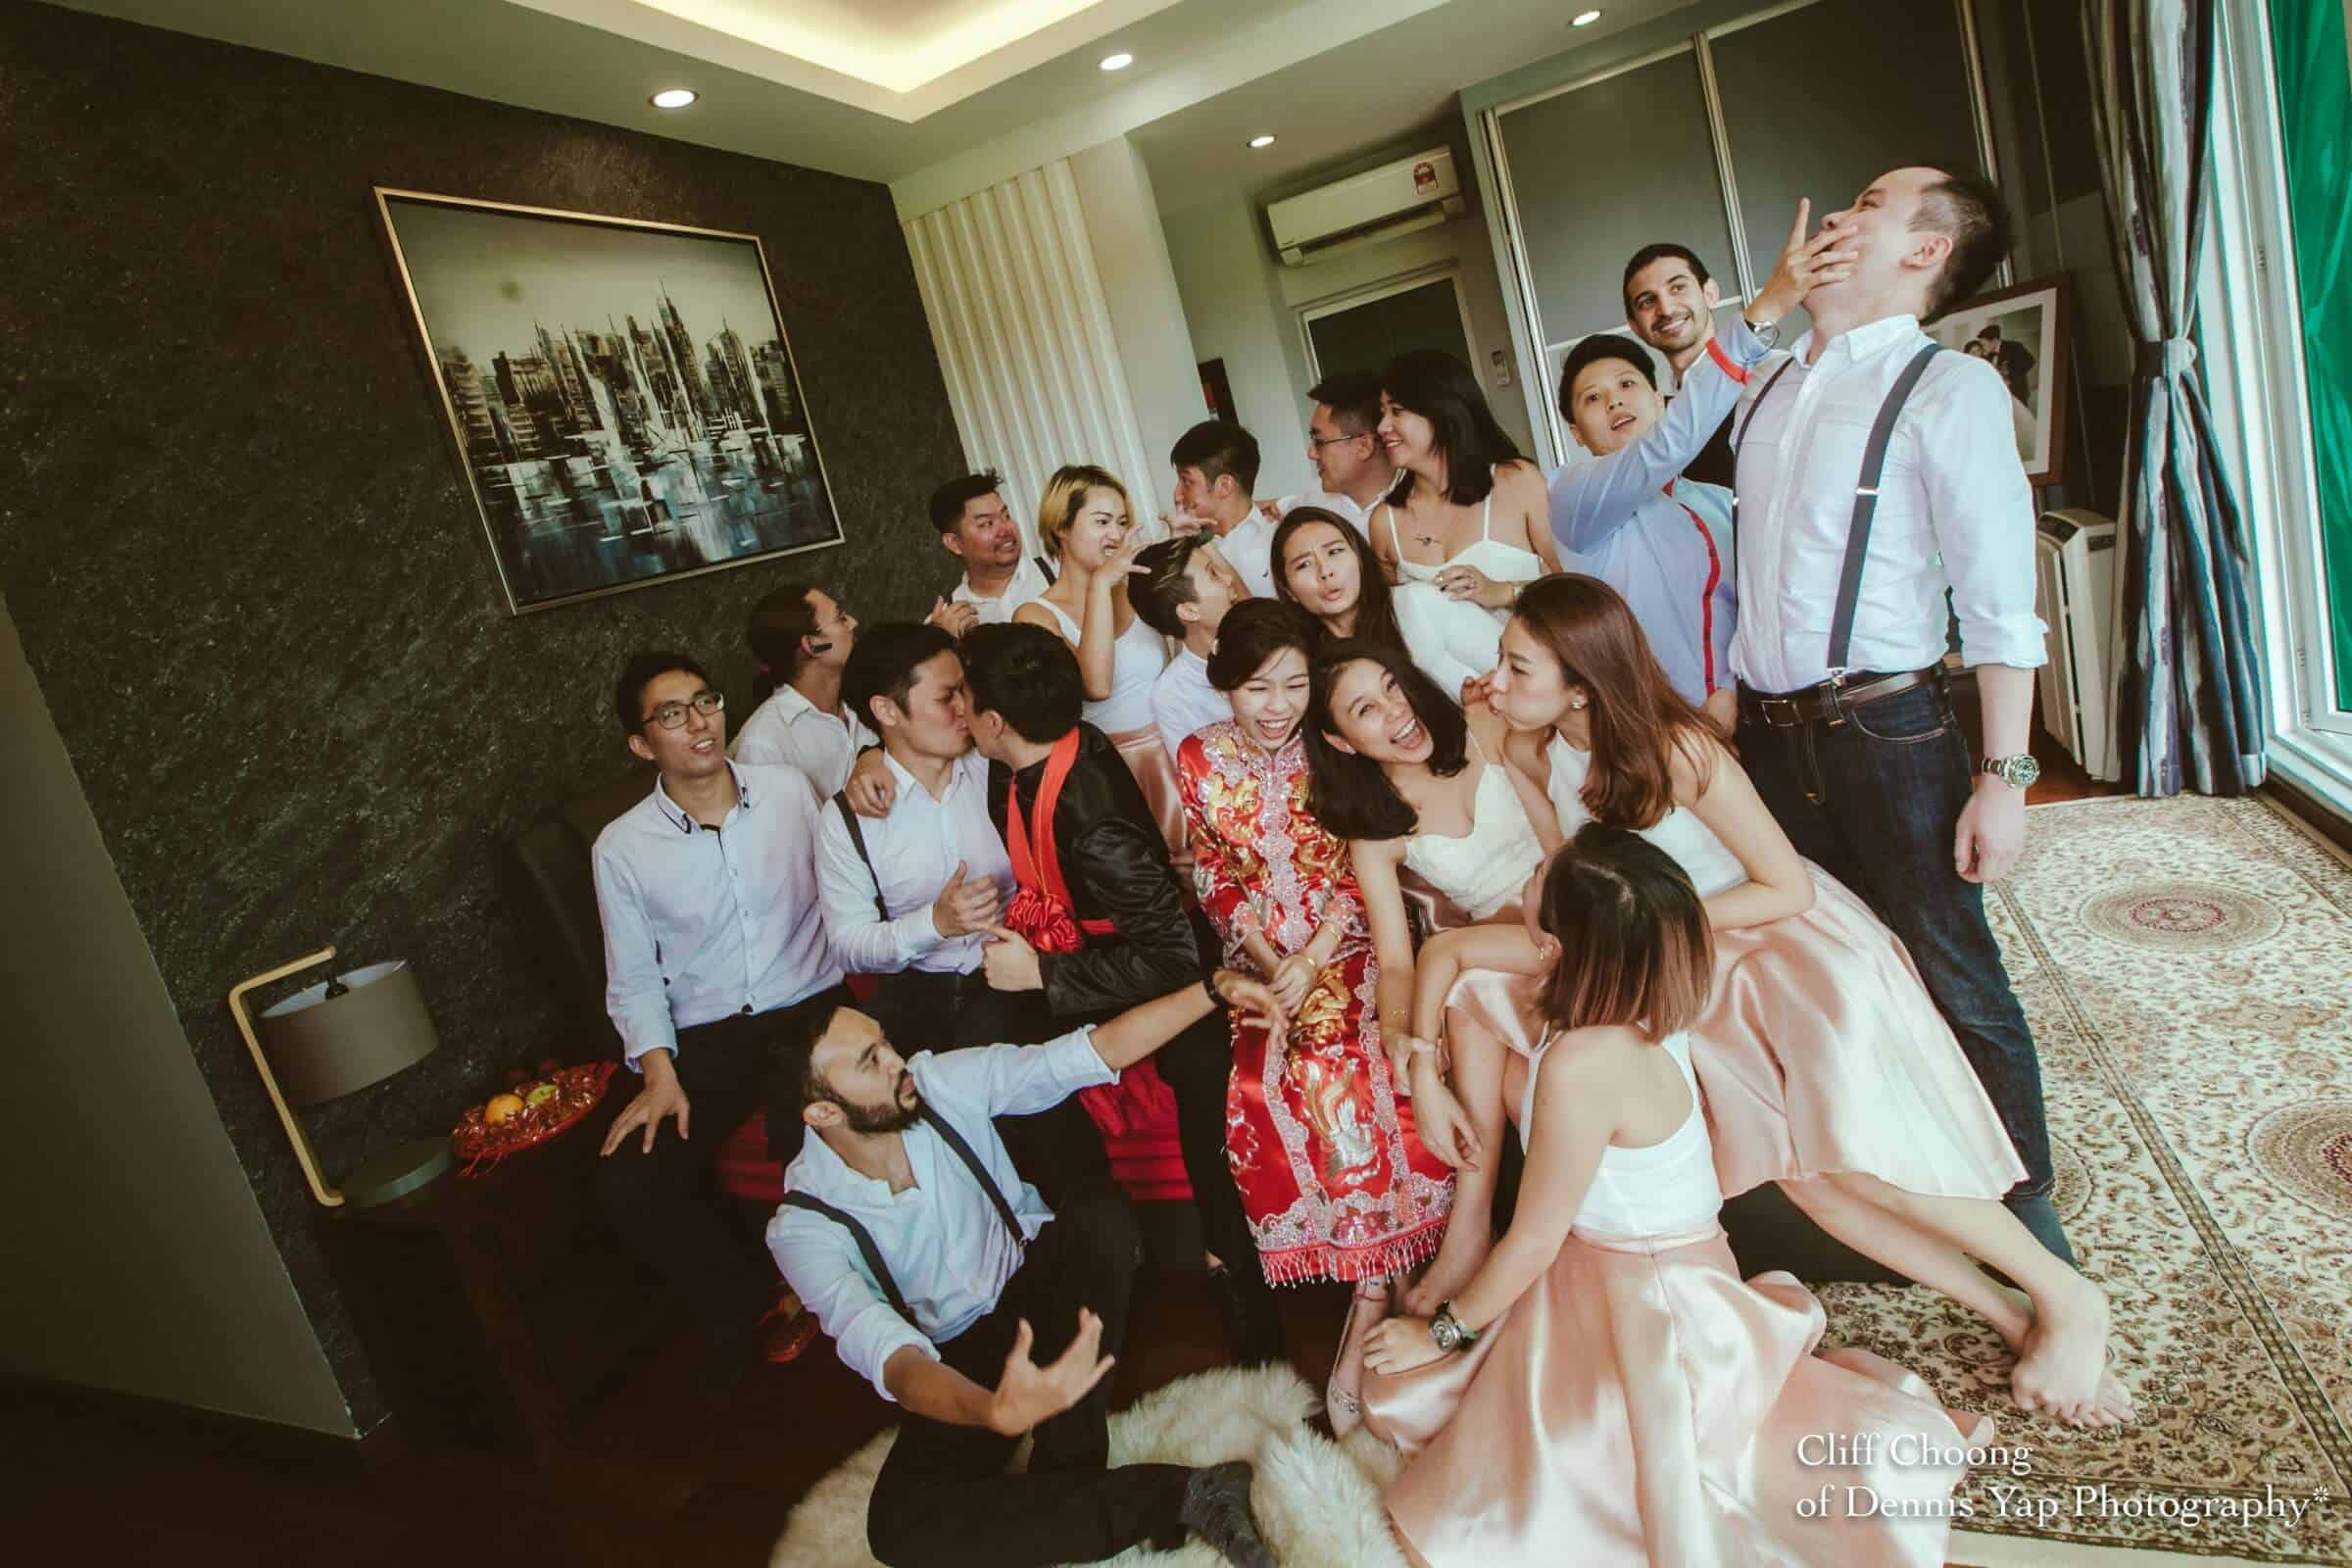 Wedding day in Kuala Lumpur Kota Kemuning Malaysia Cliff Choong Photography actual day Tea Ceremony red chinese traditional